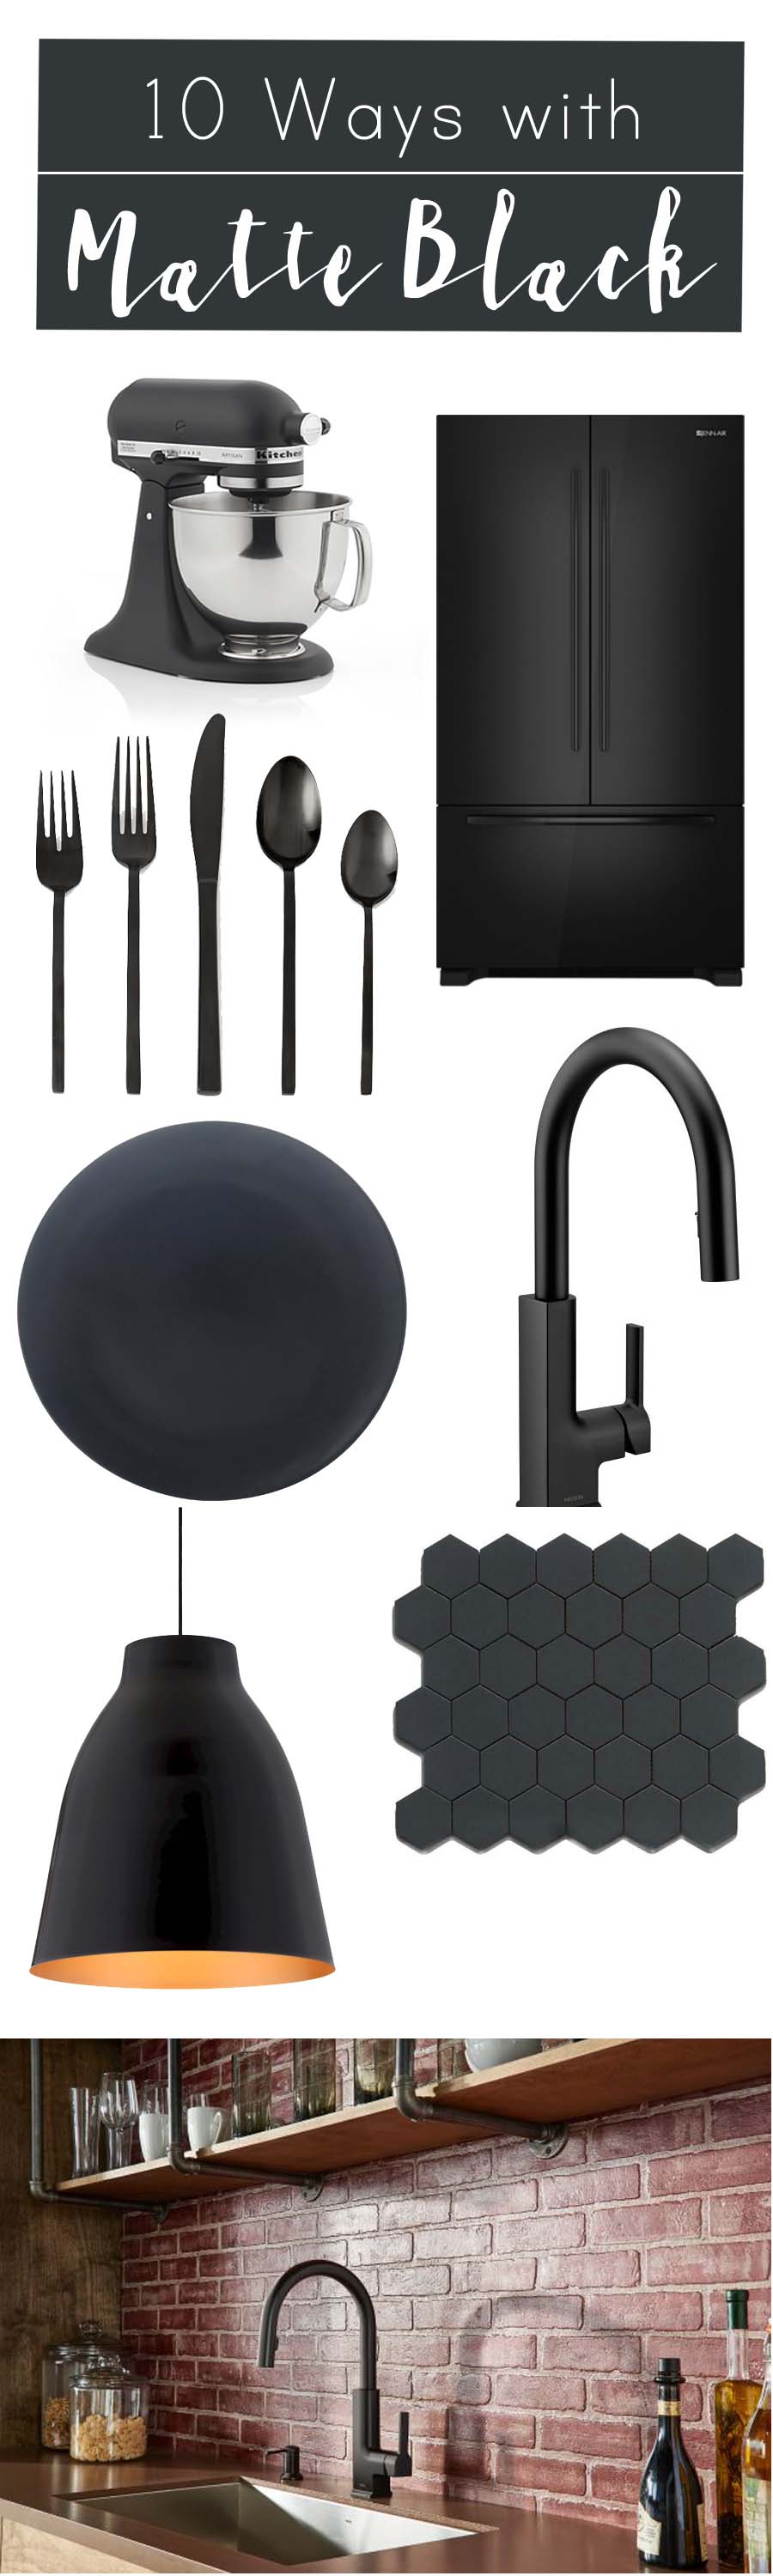 10 Ways with Matte Black